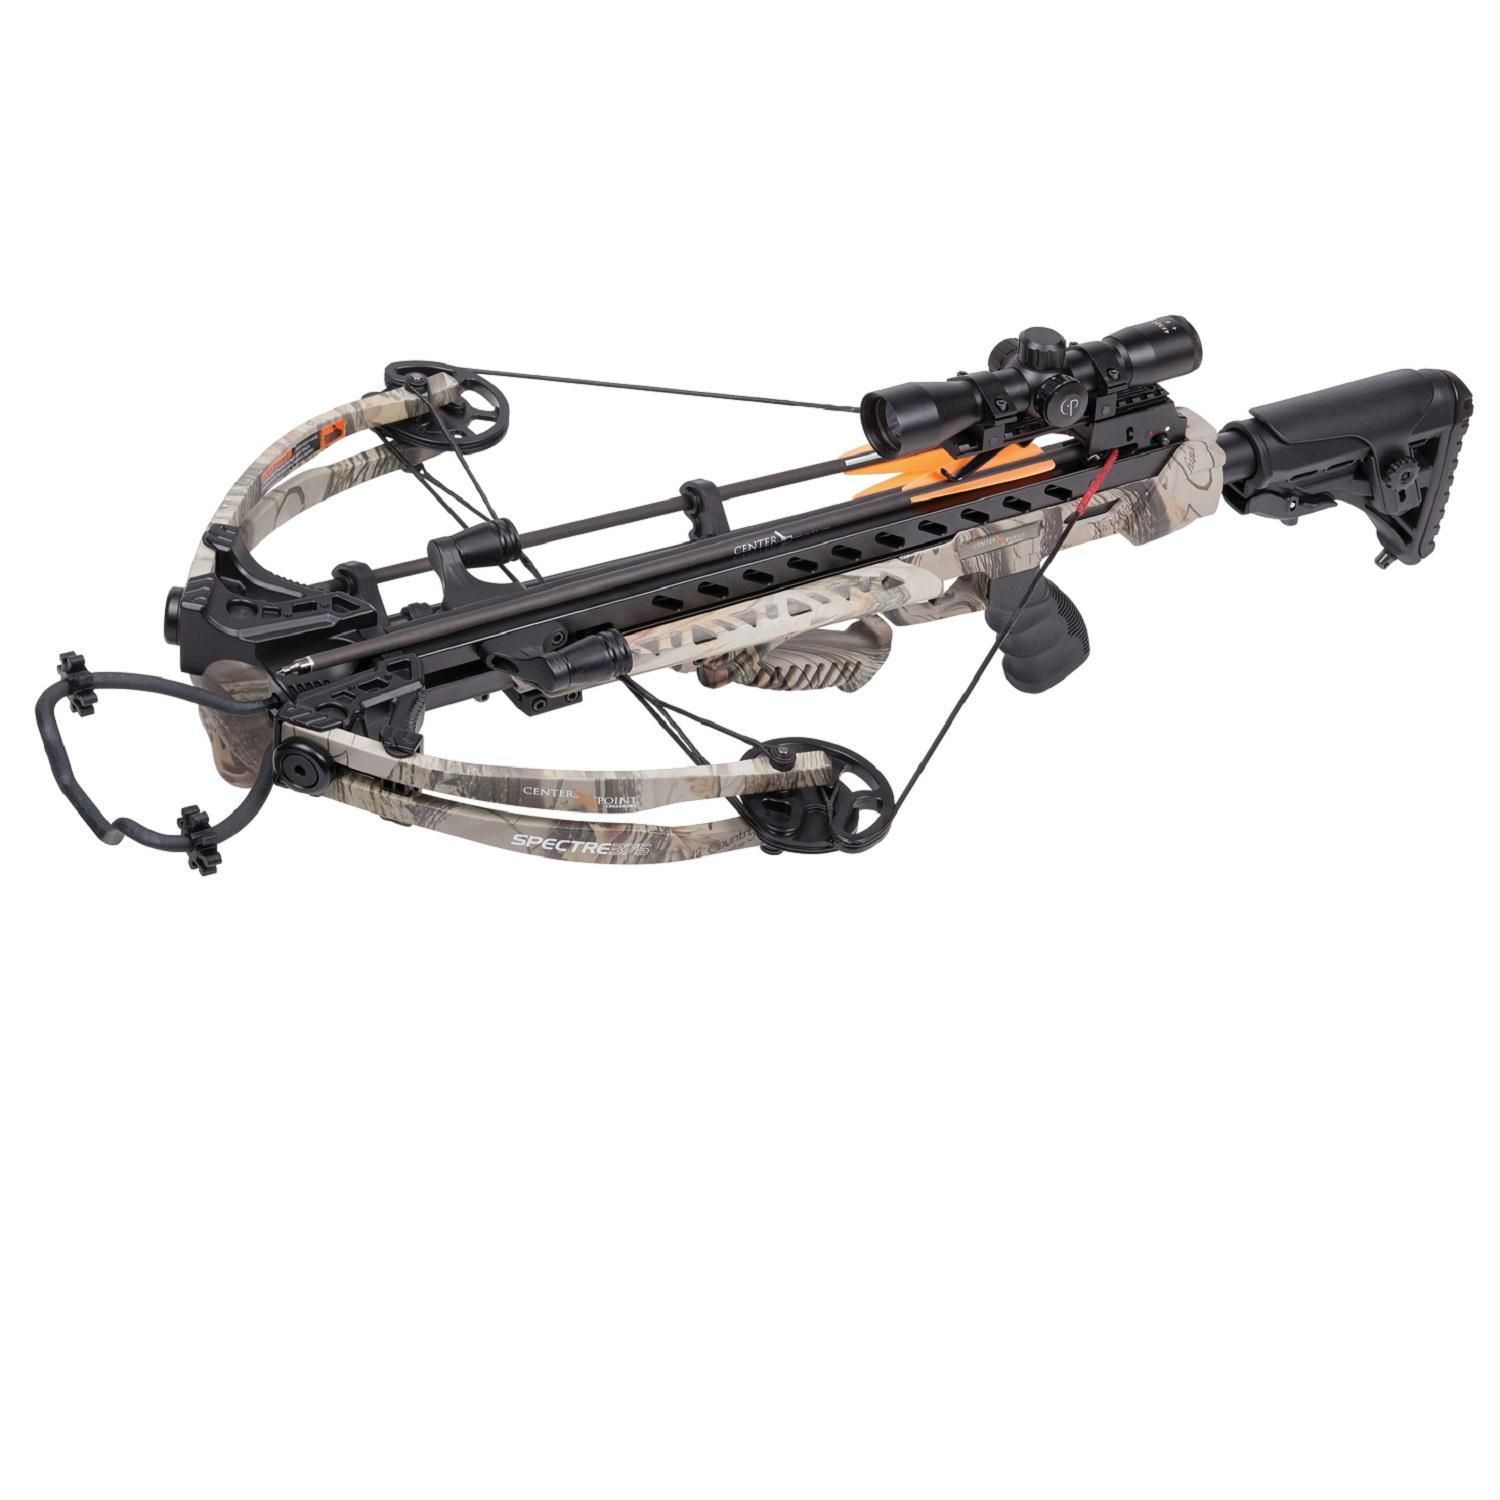 Pin on Sa Sports Crossbow Equipment & Accessories